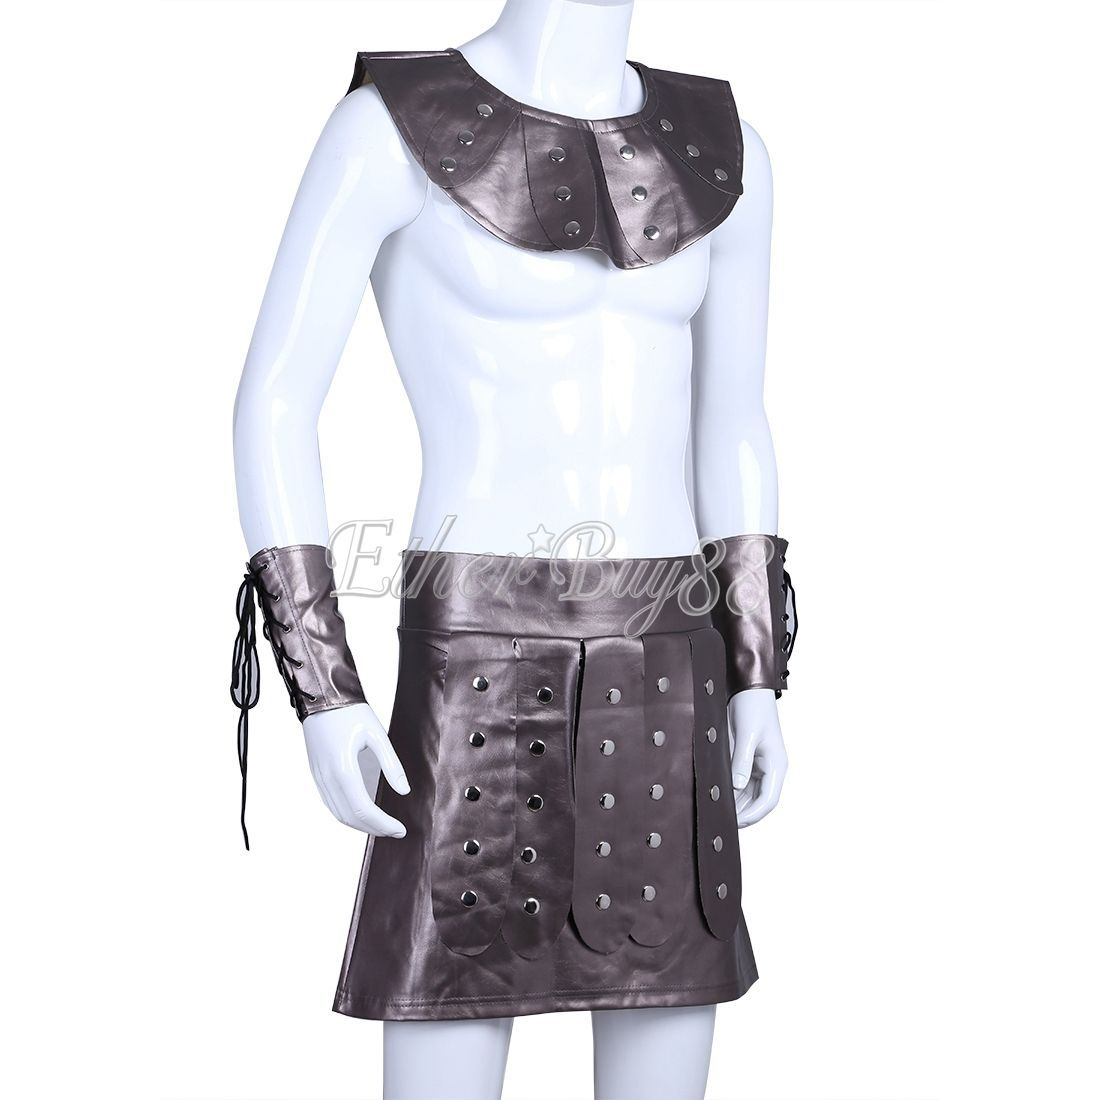 Men Faux Leather Roman Gladiator Costume Greek Soldier Warrior Fancy Dress Party  sc 1 st  Bonanza & Men Faux Leather Roman Gladiator Costume and 35 similar items